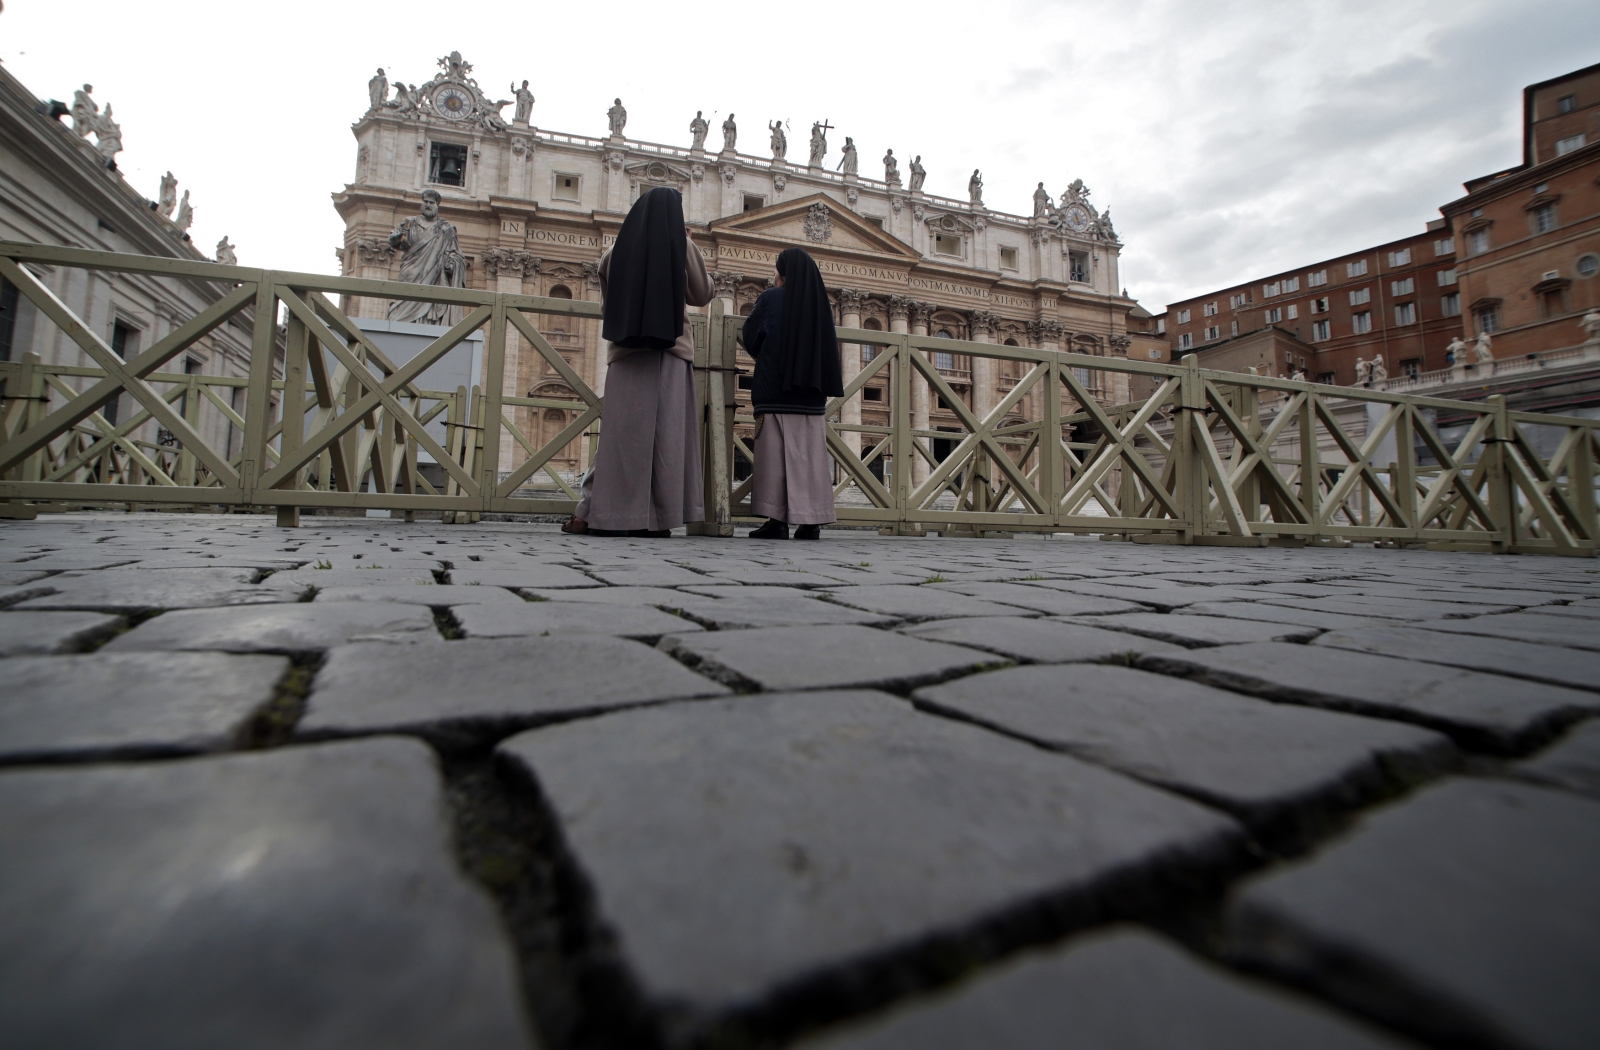 Italian Priest Porn Classy italy: priest in missing housewife probe had lewd photos of nuns